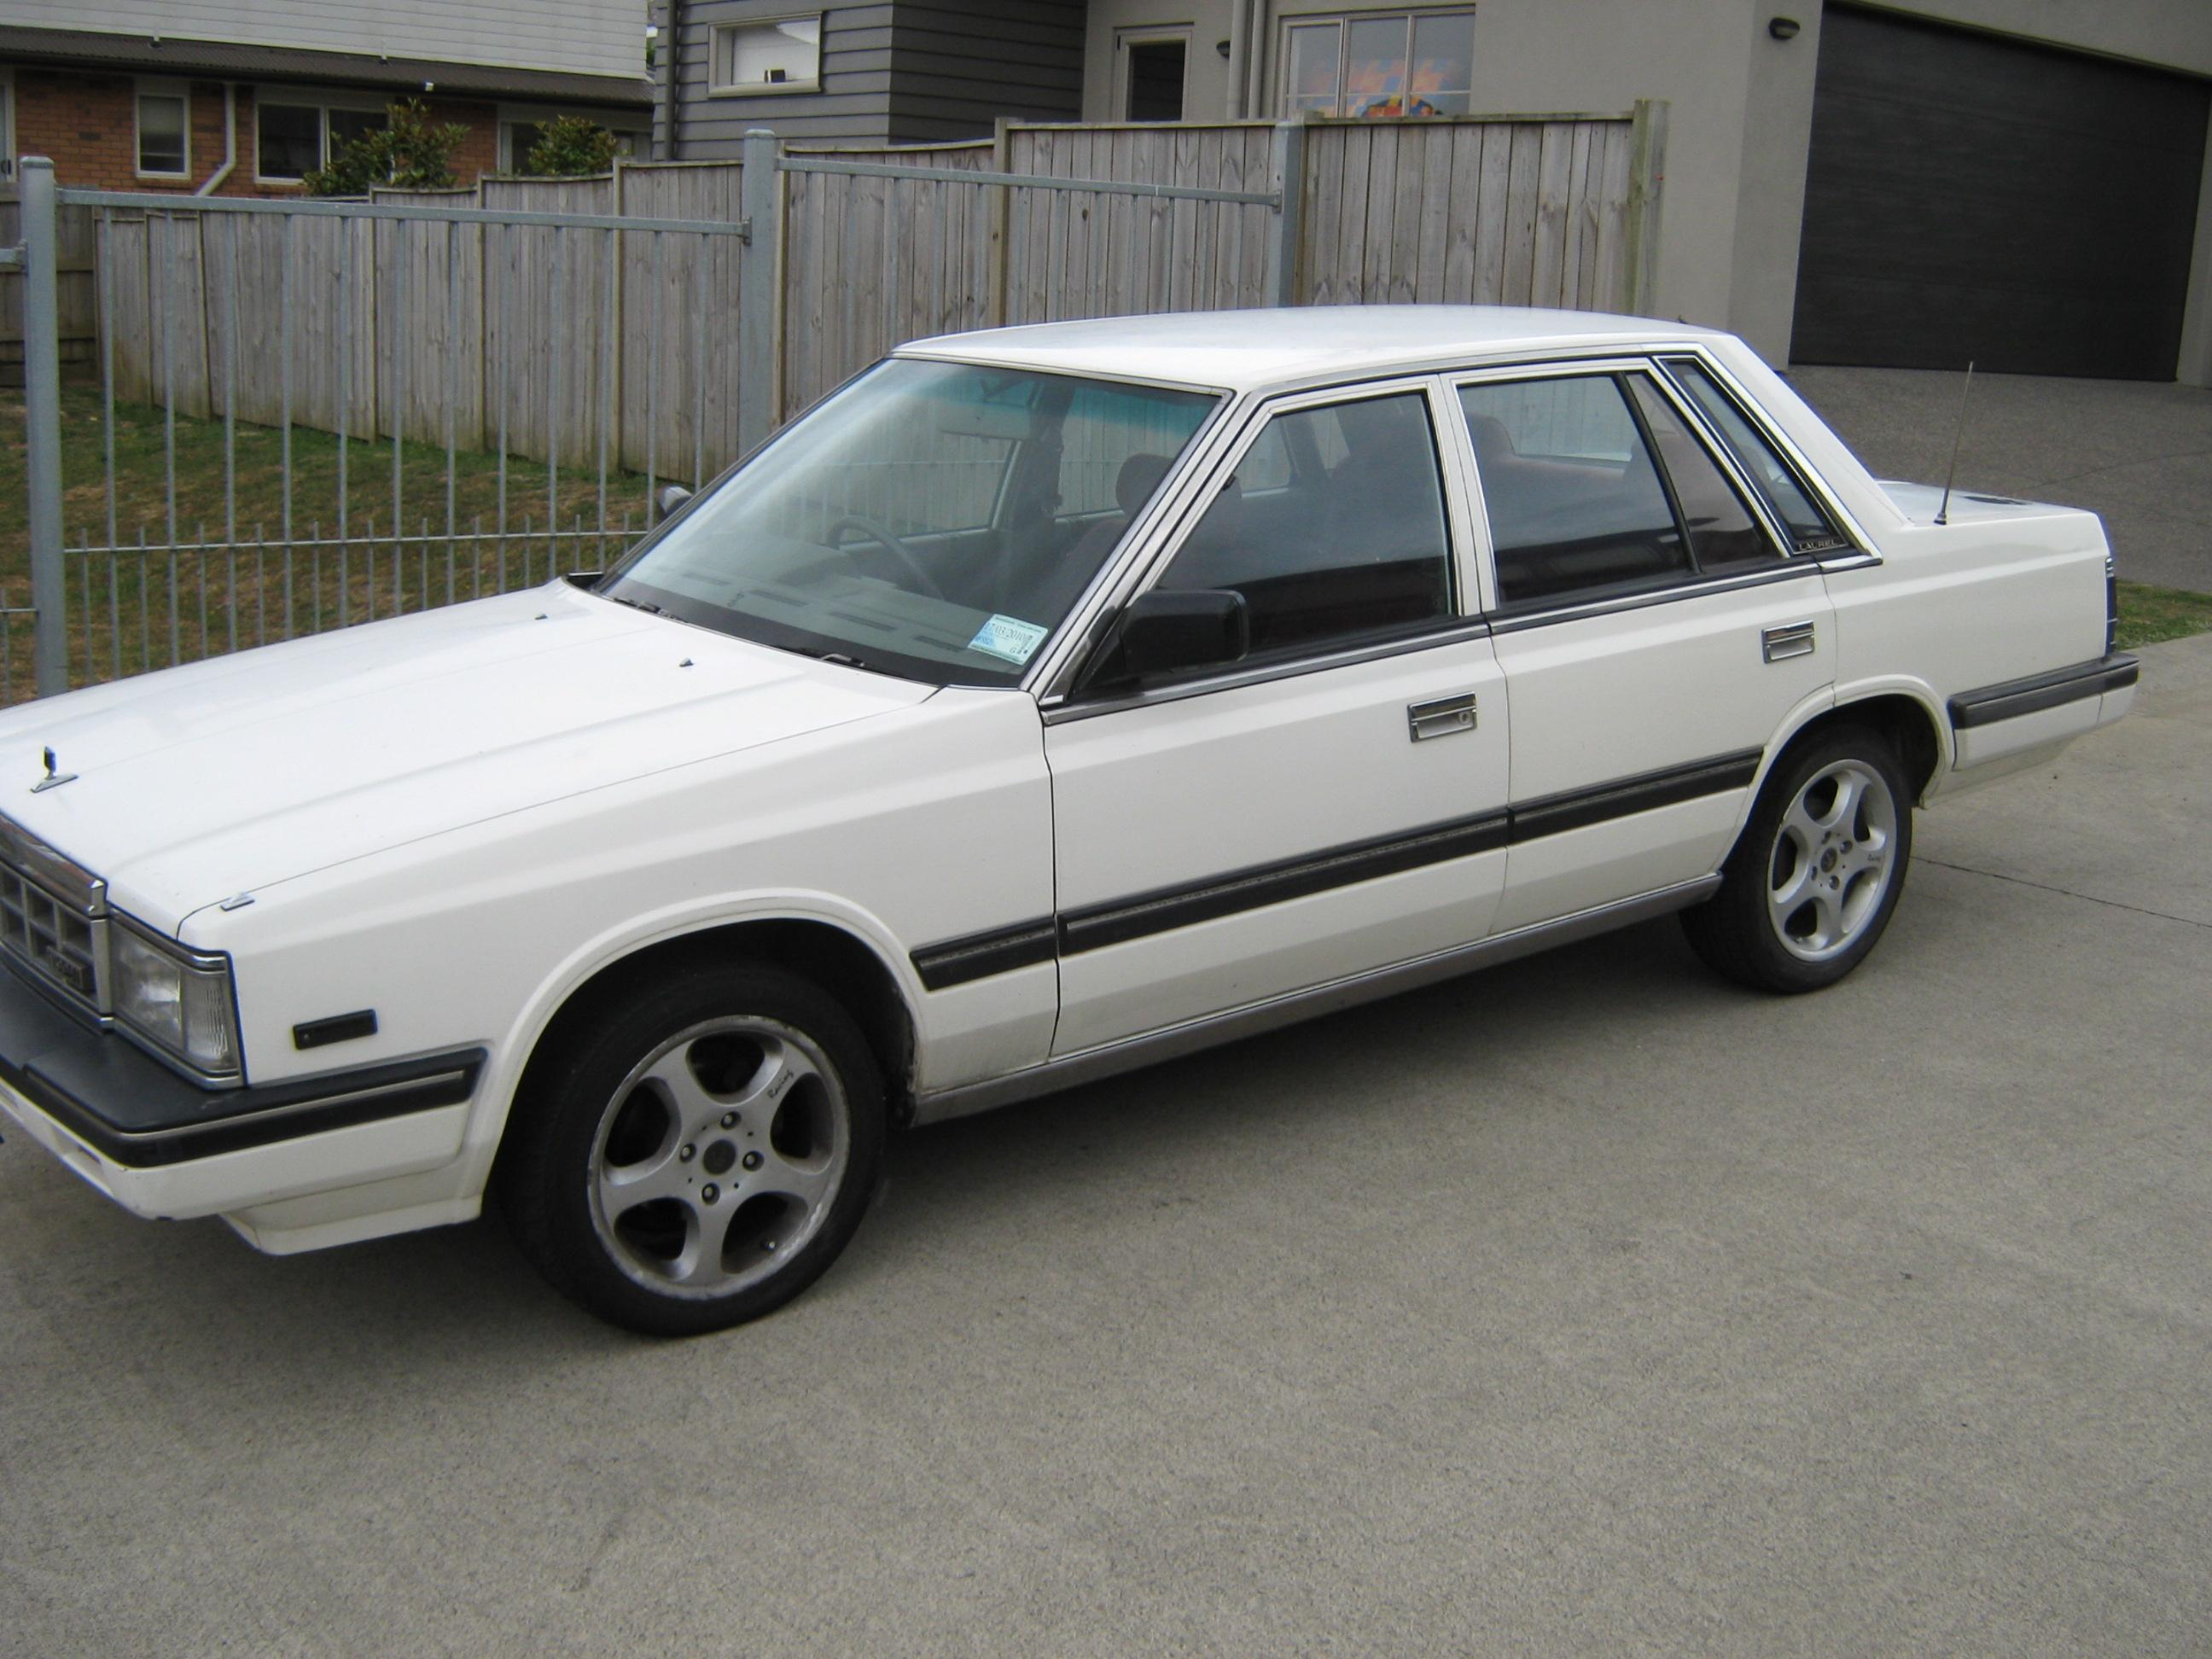 Delta_richo 1985 Nissan Laurel 14143535